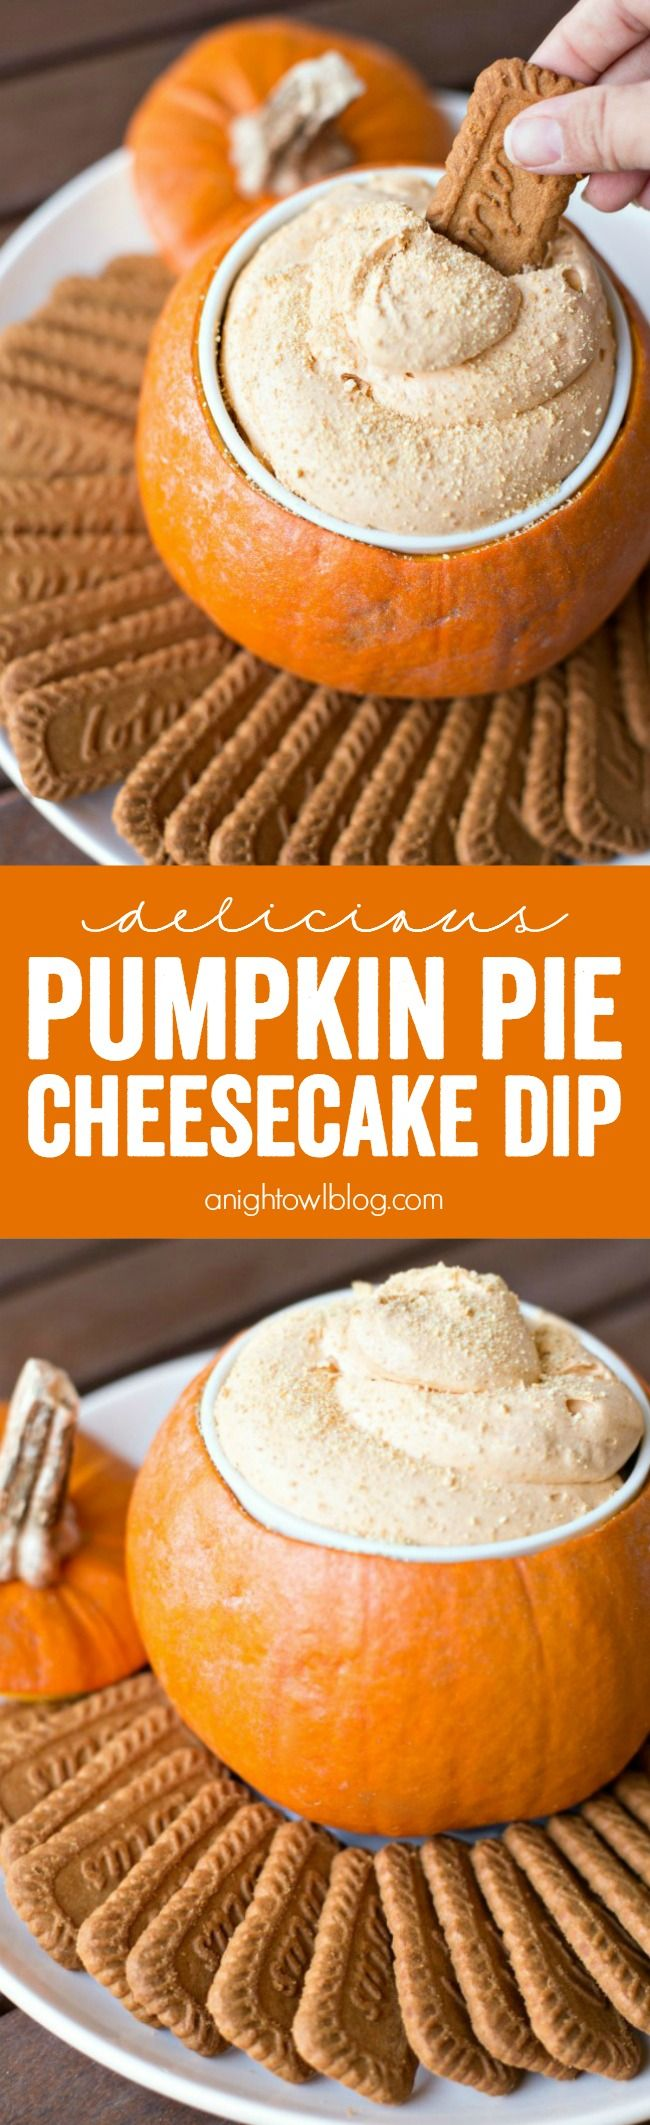 Pumpkin Pie Cheesecake Dip #thanksgivingfood